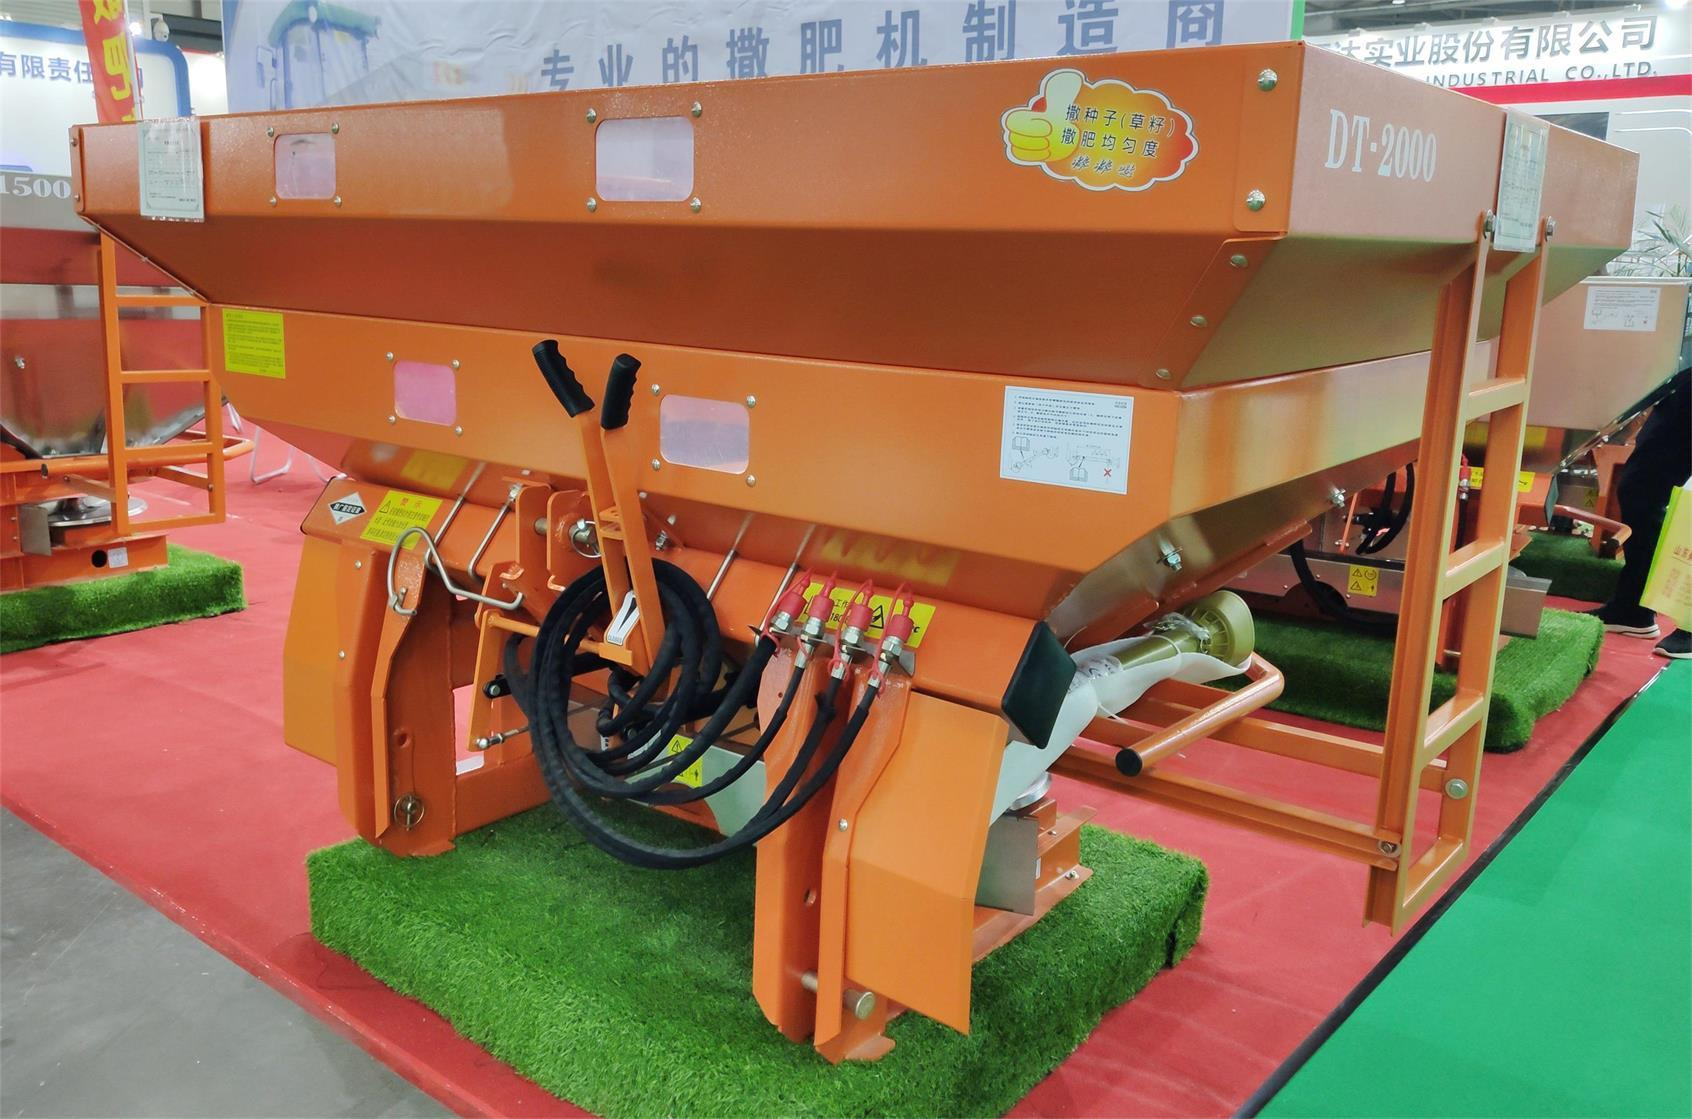 Stainless Steel Double Plate Fertilizer Spreader